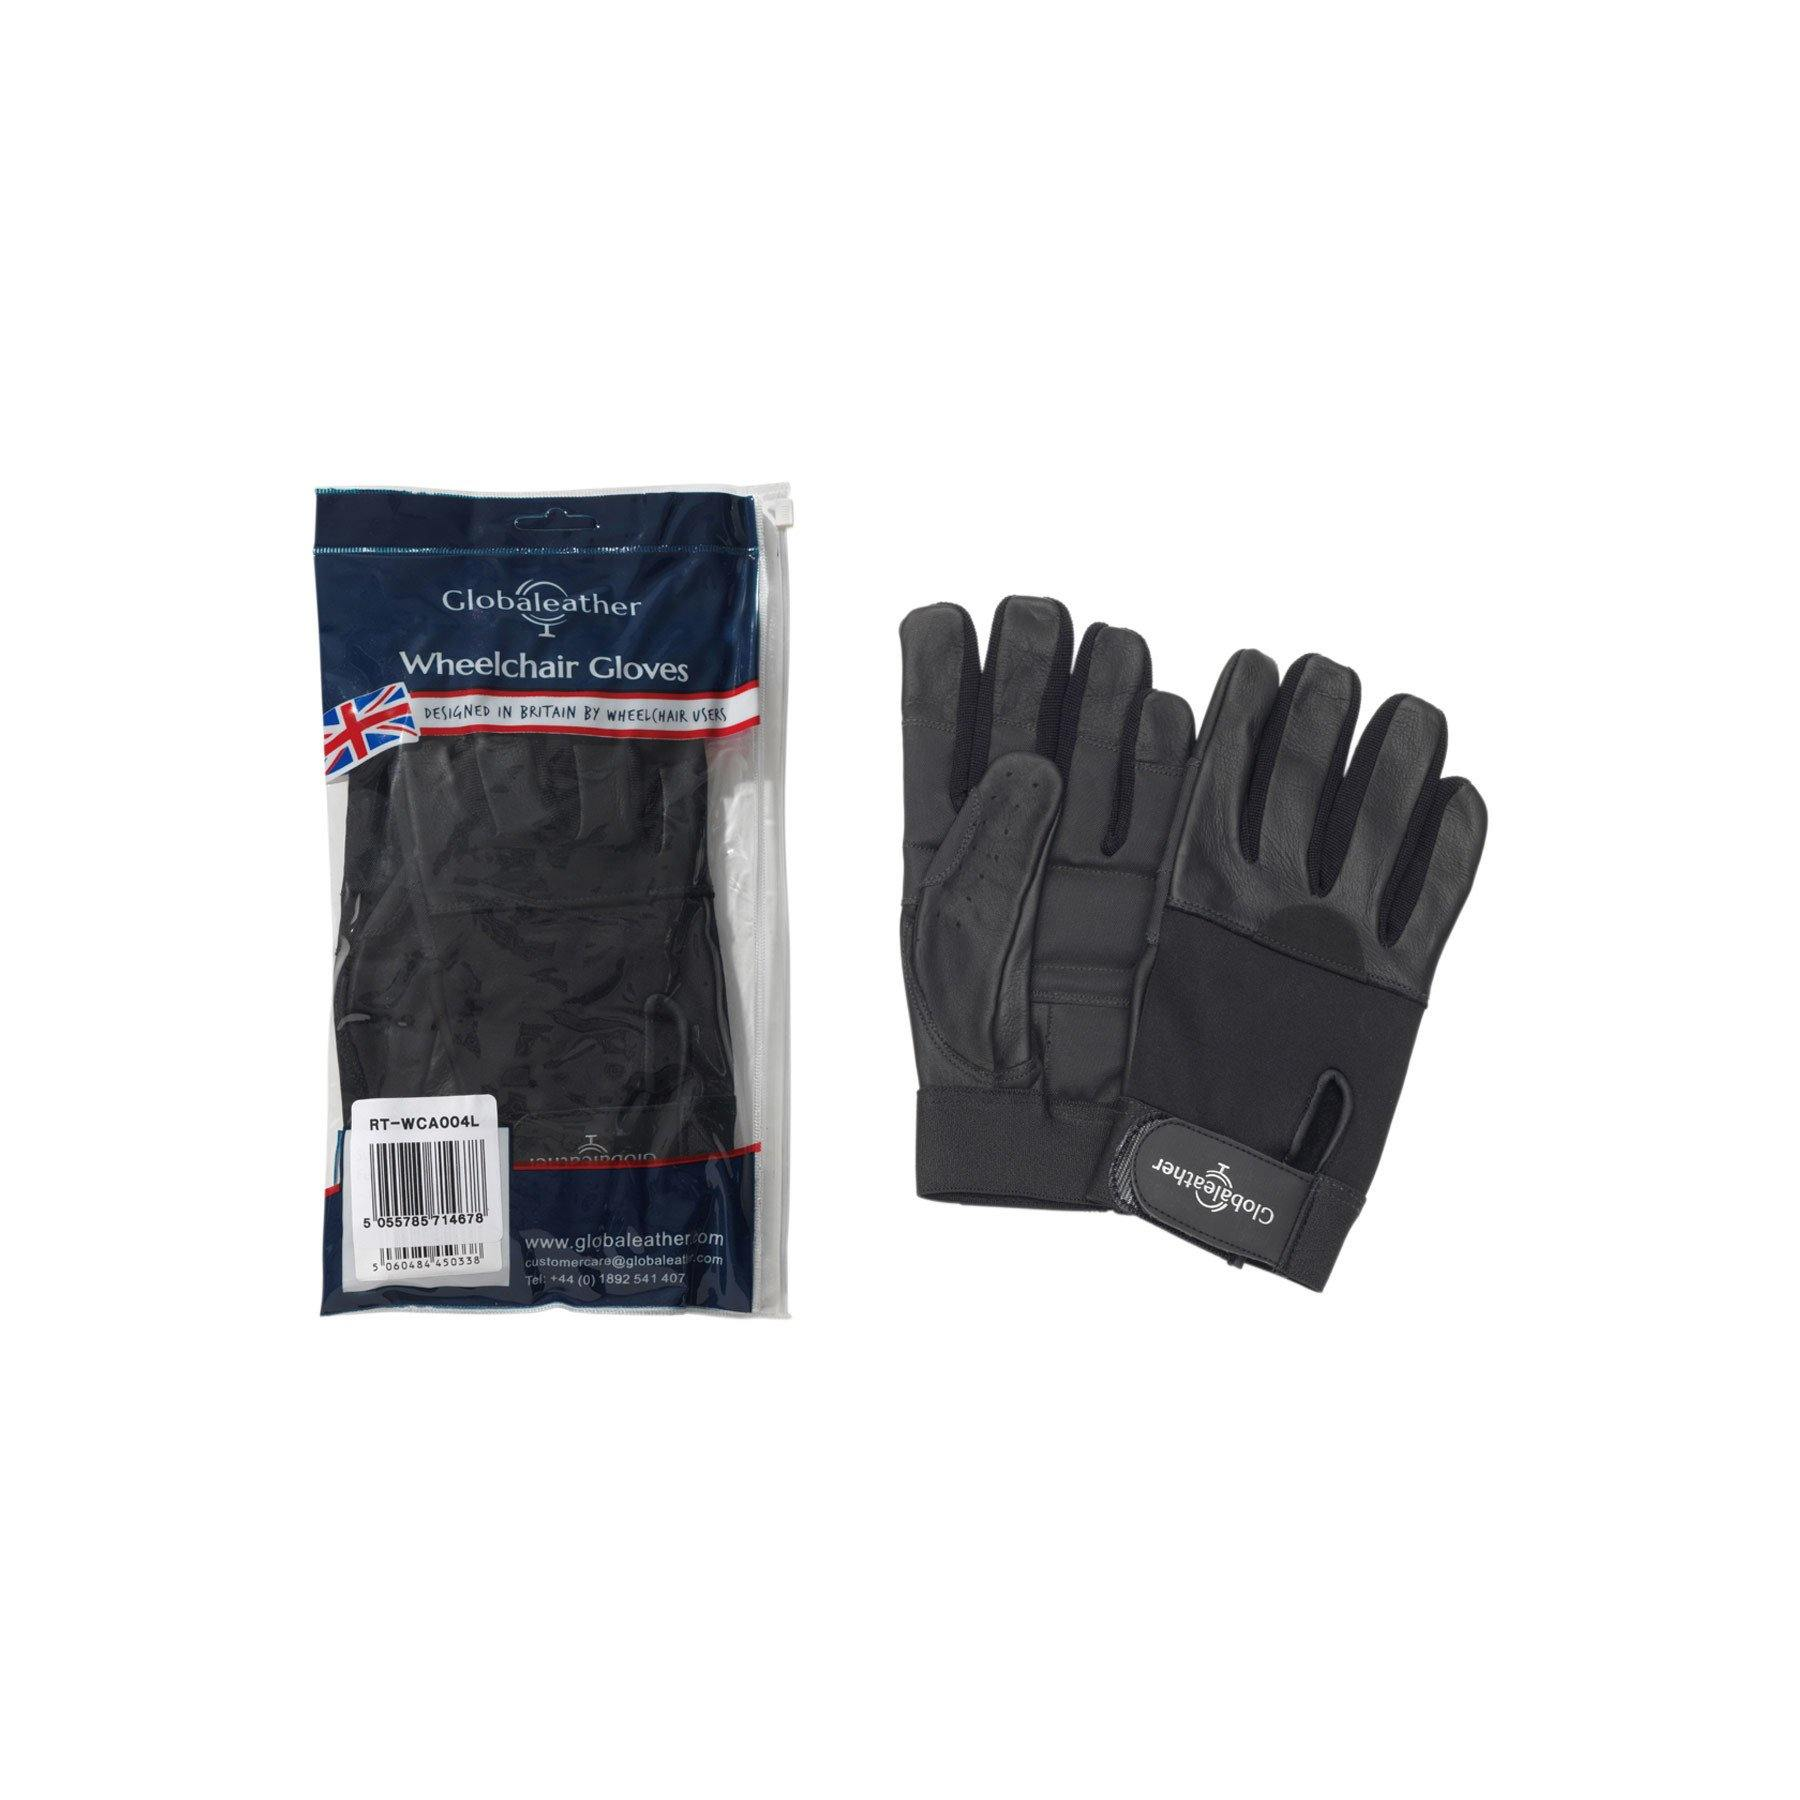 Sure Grip Full Finger Wheelchair Gloves S - Mobility2you - discount wholesale prices - from Drive DeVilbiss Healthcare